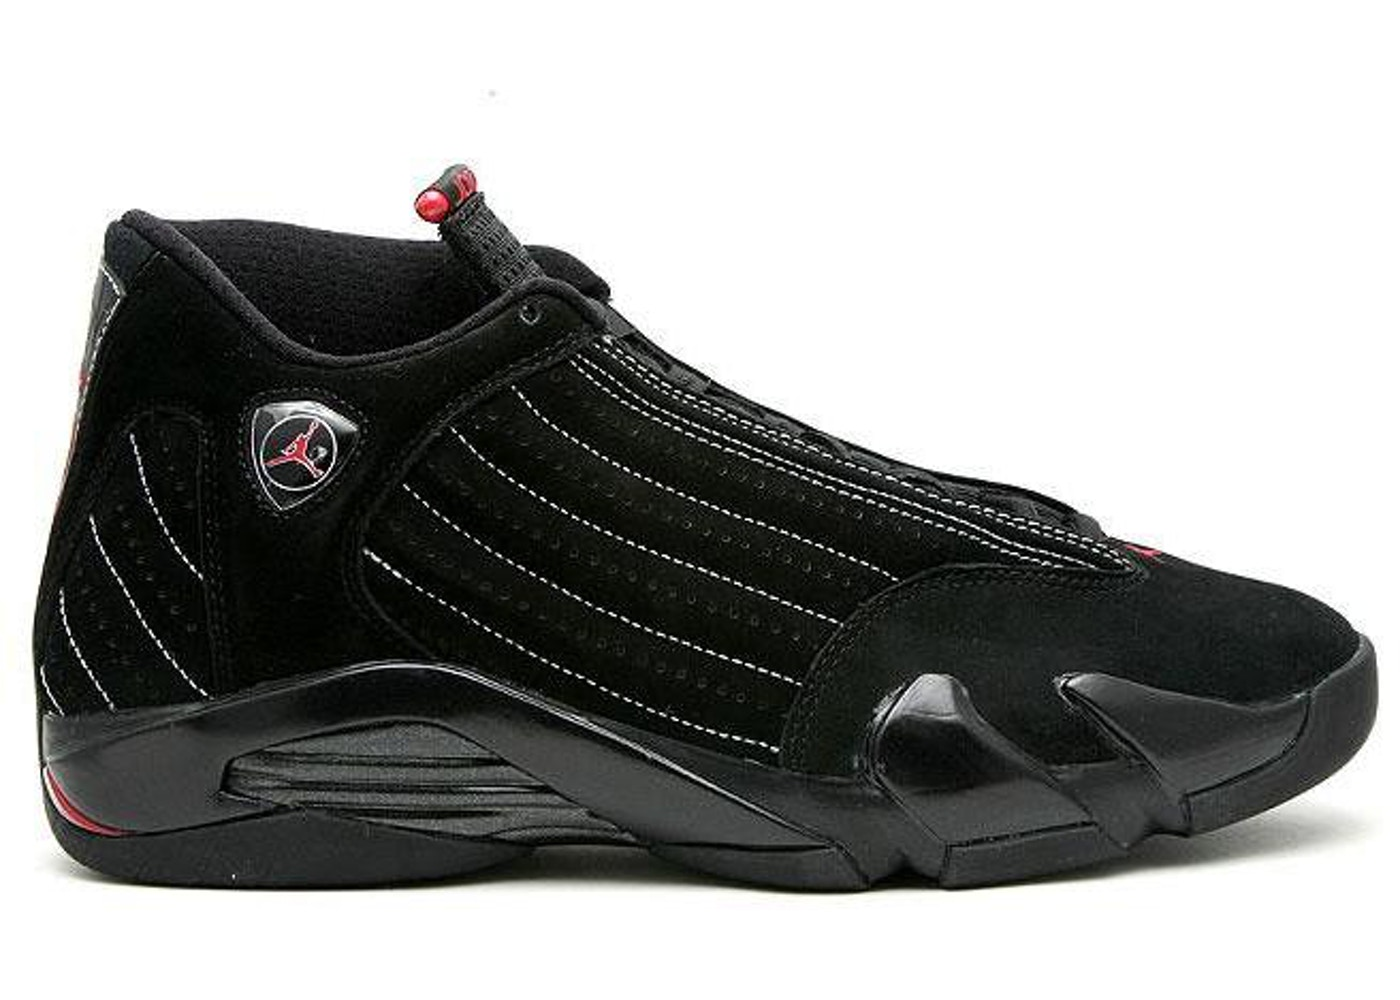 d8a8dbd6adb2c5 Buy Air Jordan 14 Shoes   Deadstock Sneakers